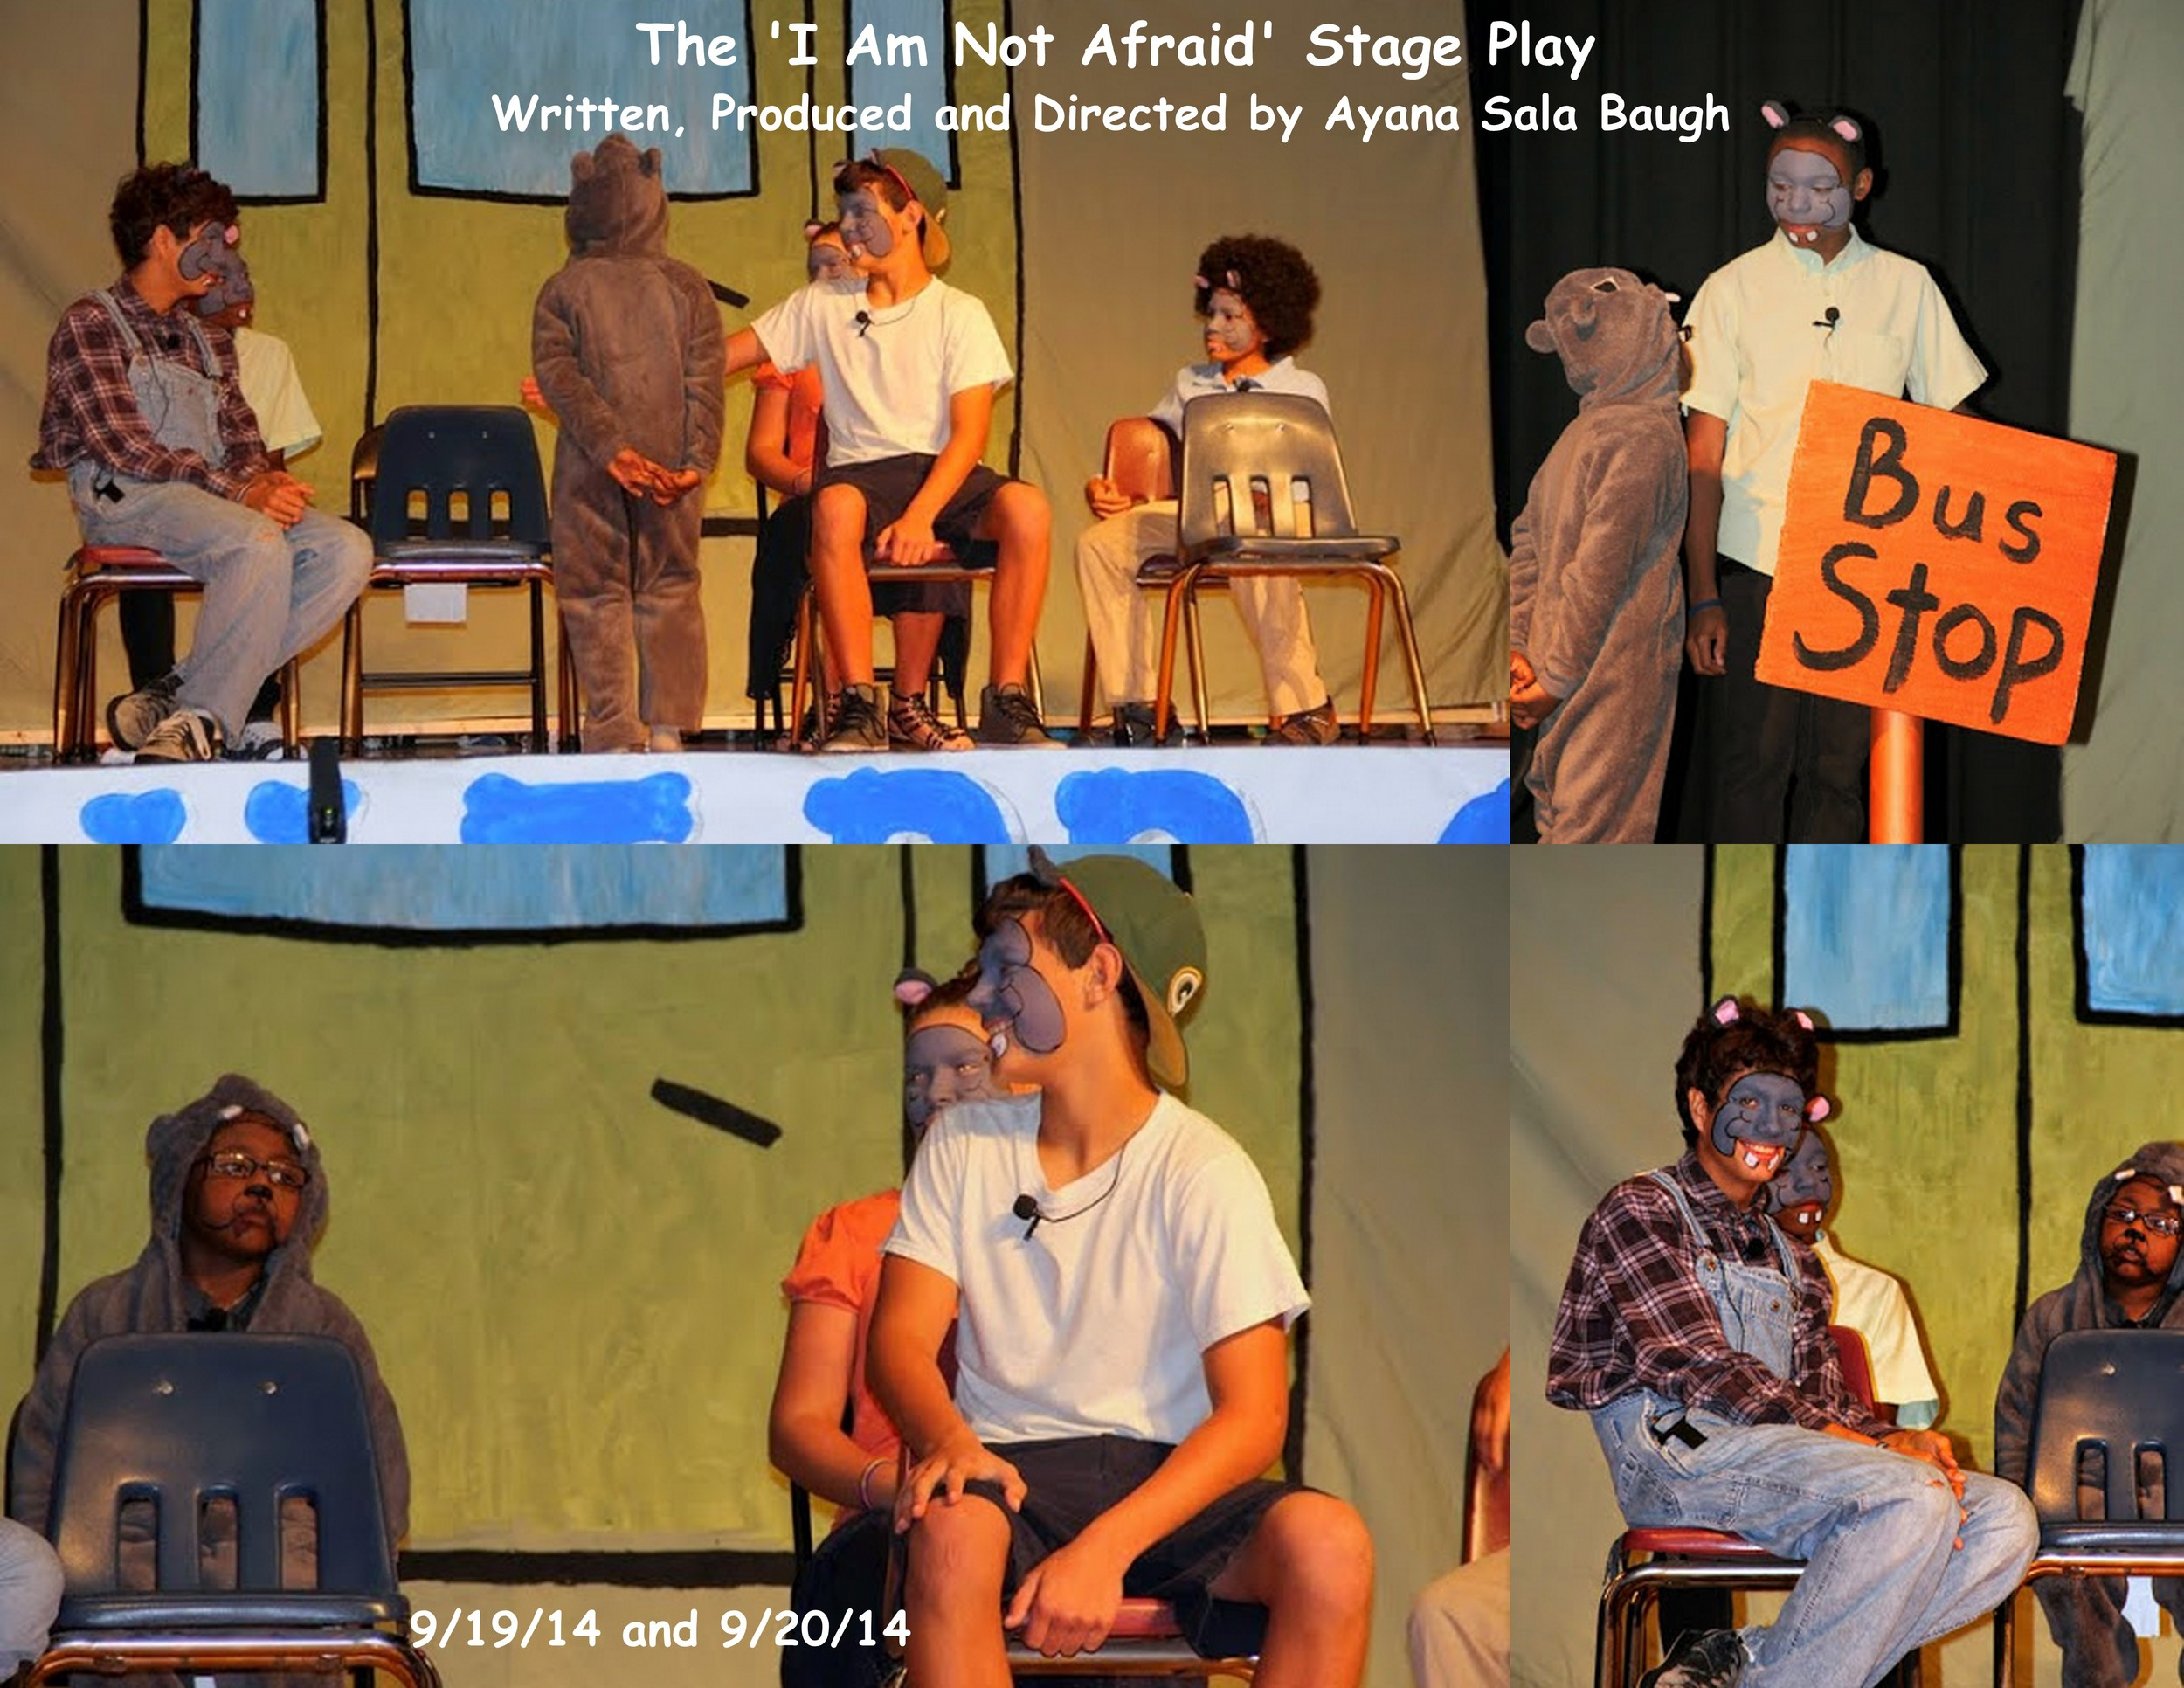 I Am Not Afraid Stage Play Pics 091914 and 0920147 collage 8.jpg